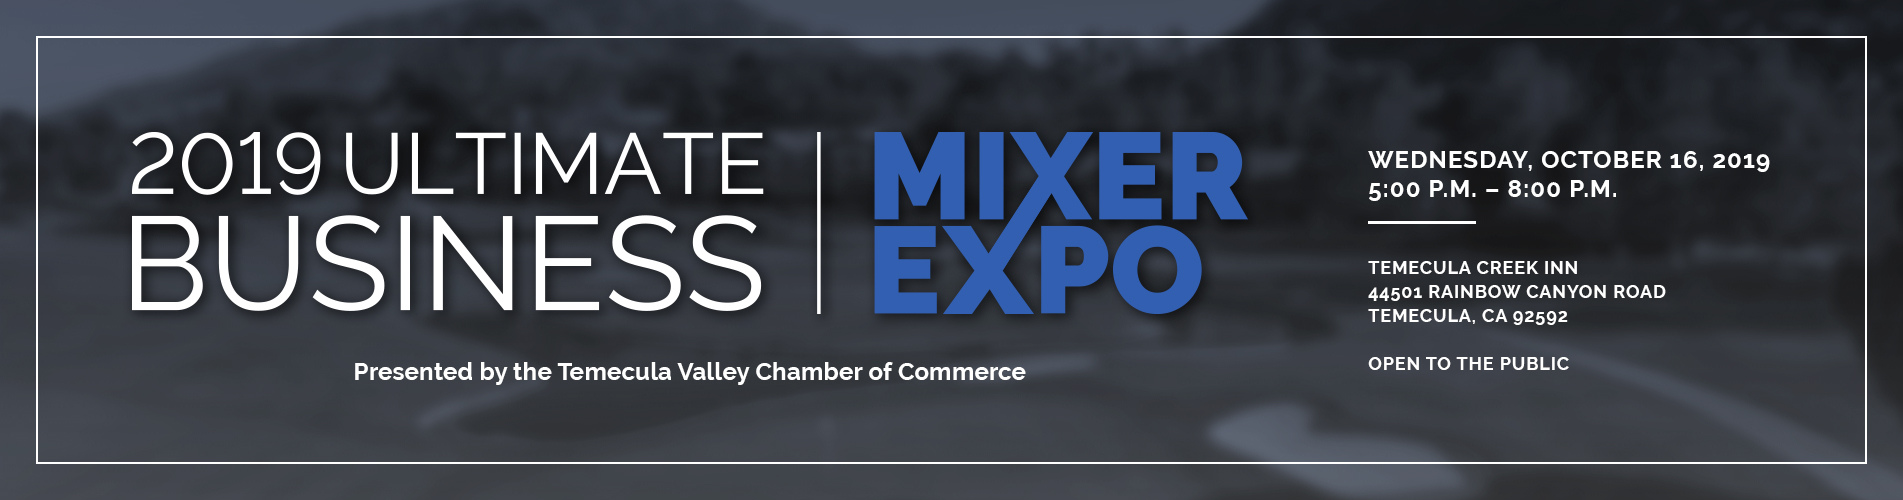 TVCC_2019_Ultimate_Business_Mixer_Expo_Slider (002)